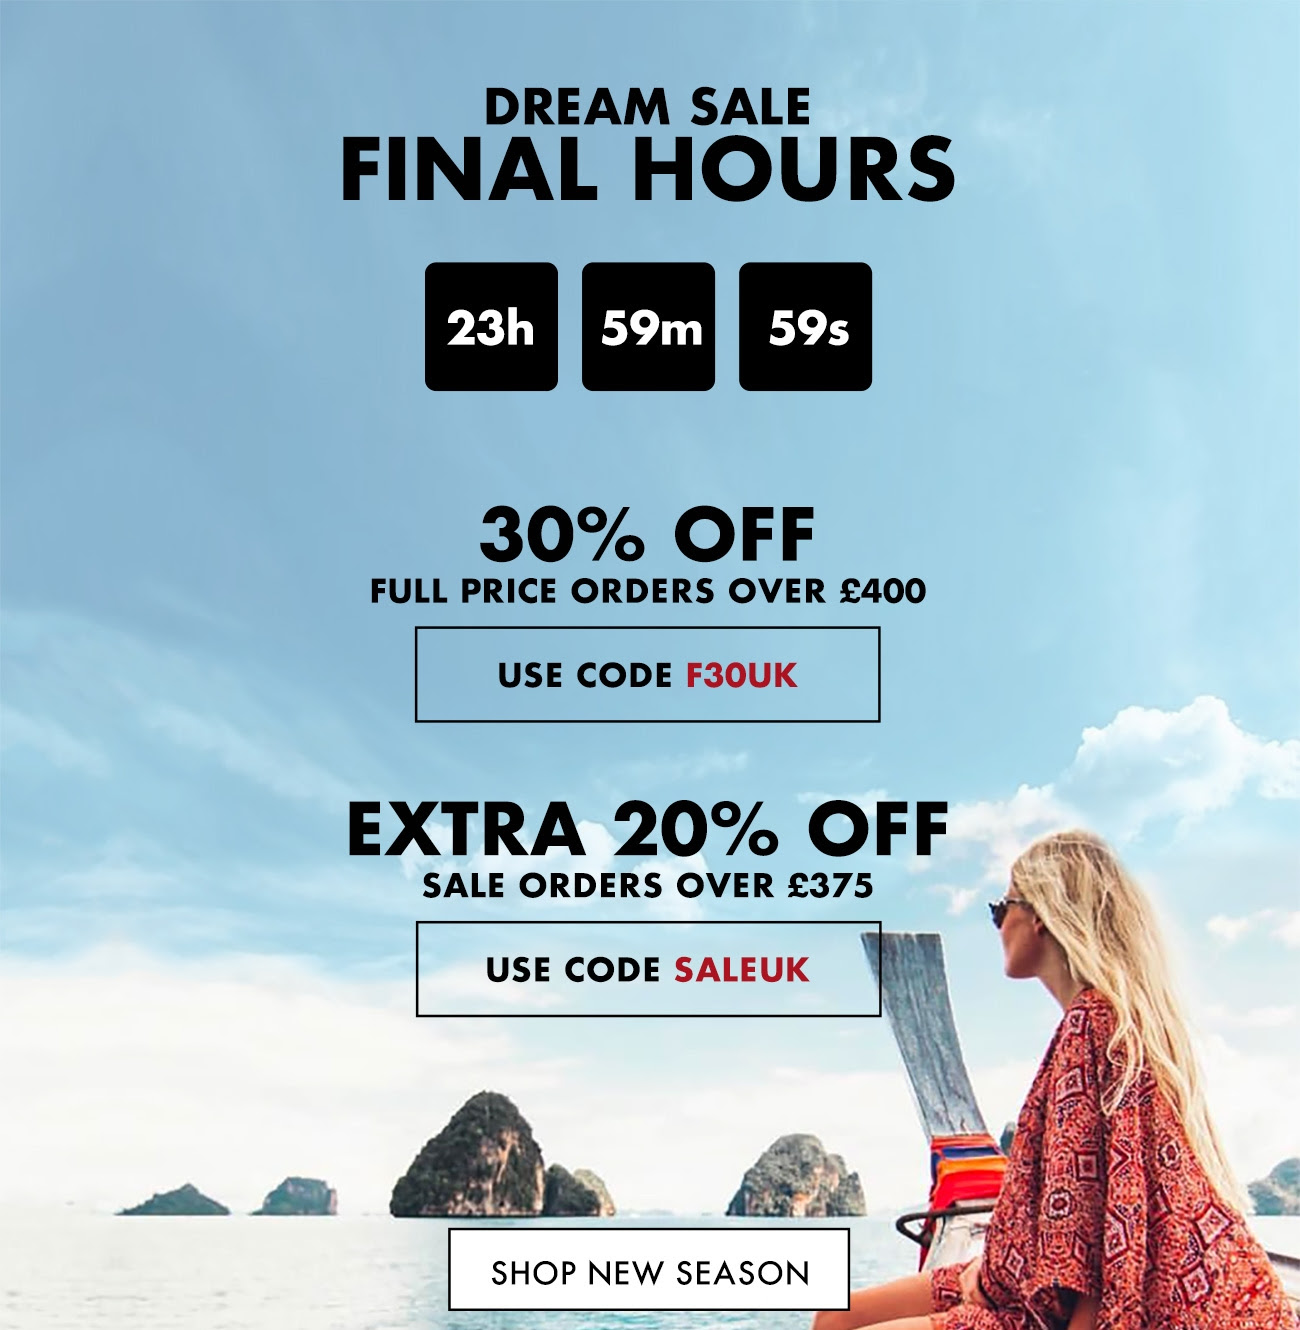 FORZIERI - Tic toc, few hours left - Dream Sale ENDS HERE